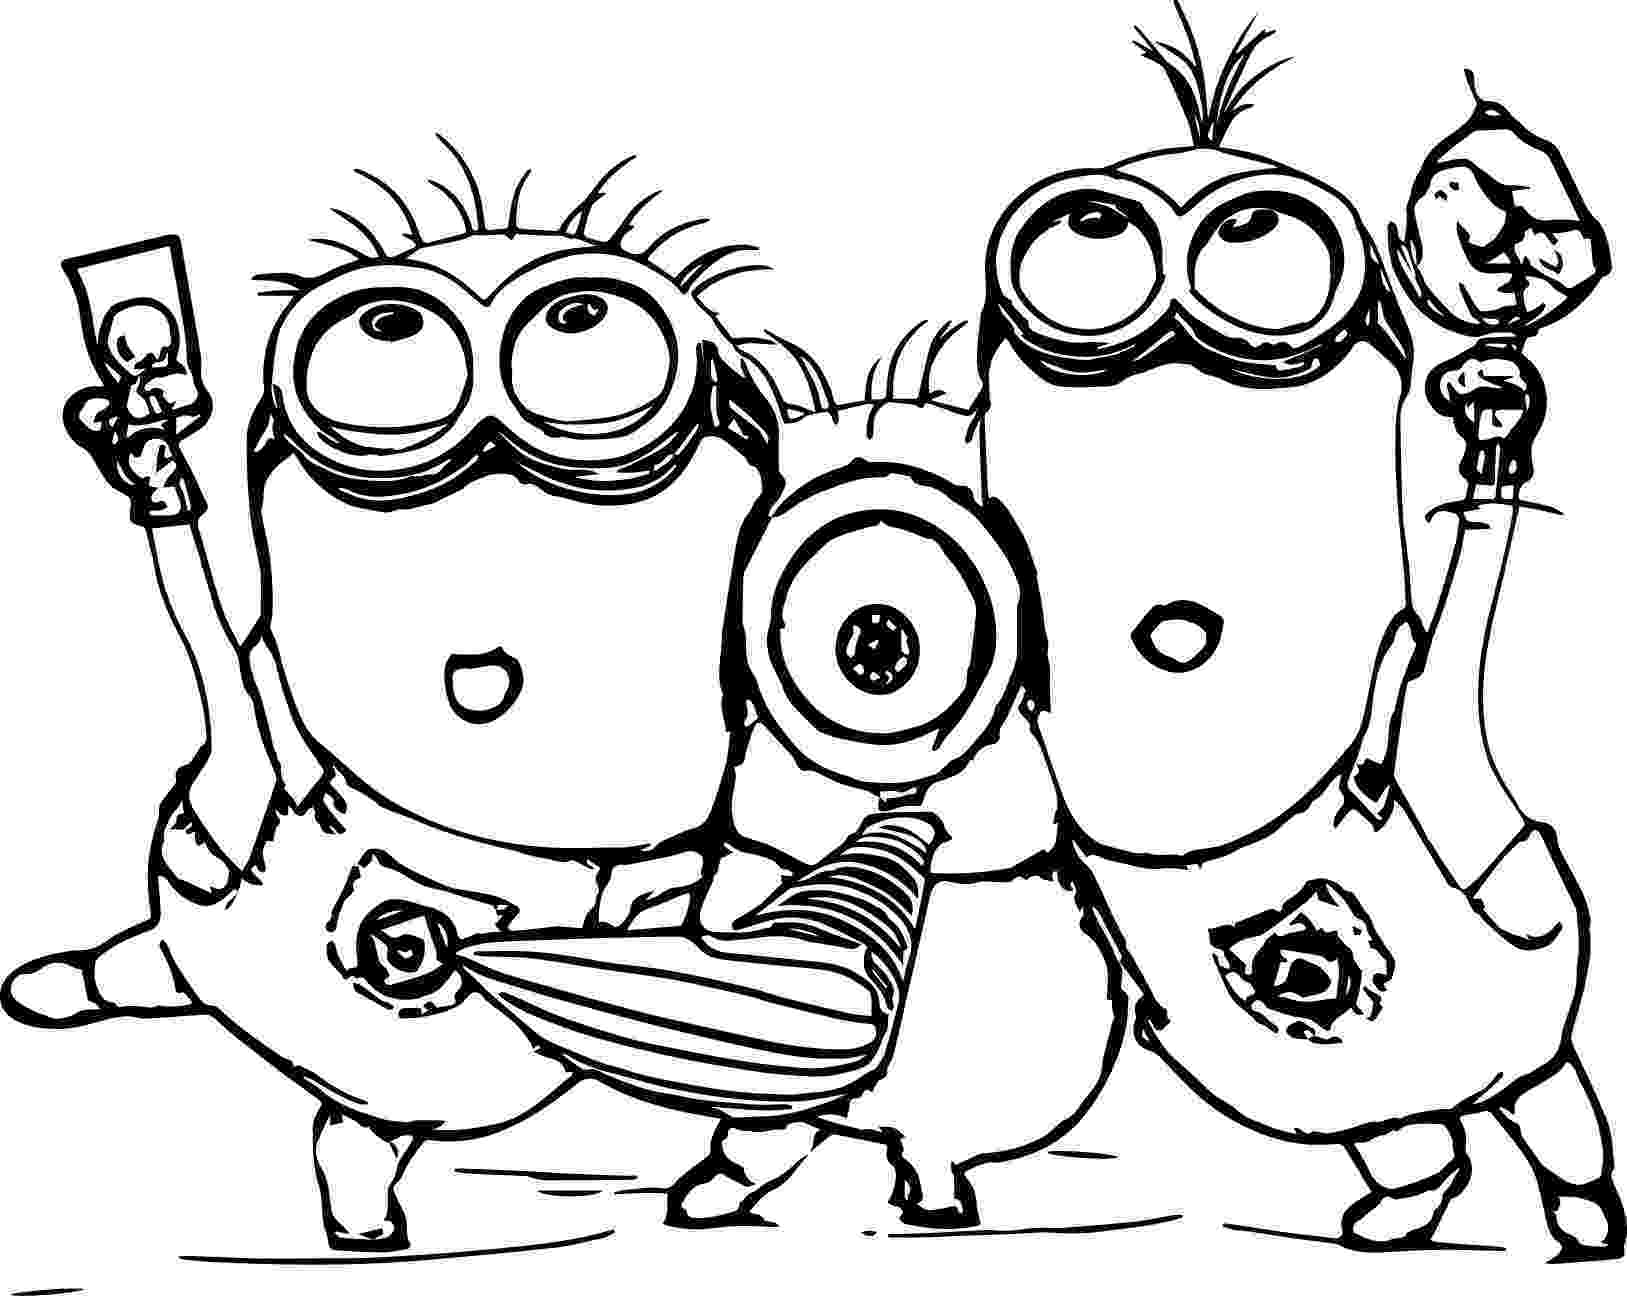 printable pictures of minions minion coloring pages best coloring pages for kids minions of printable pictures